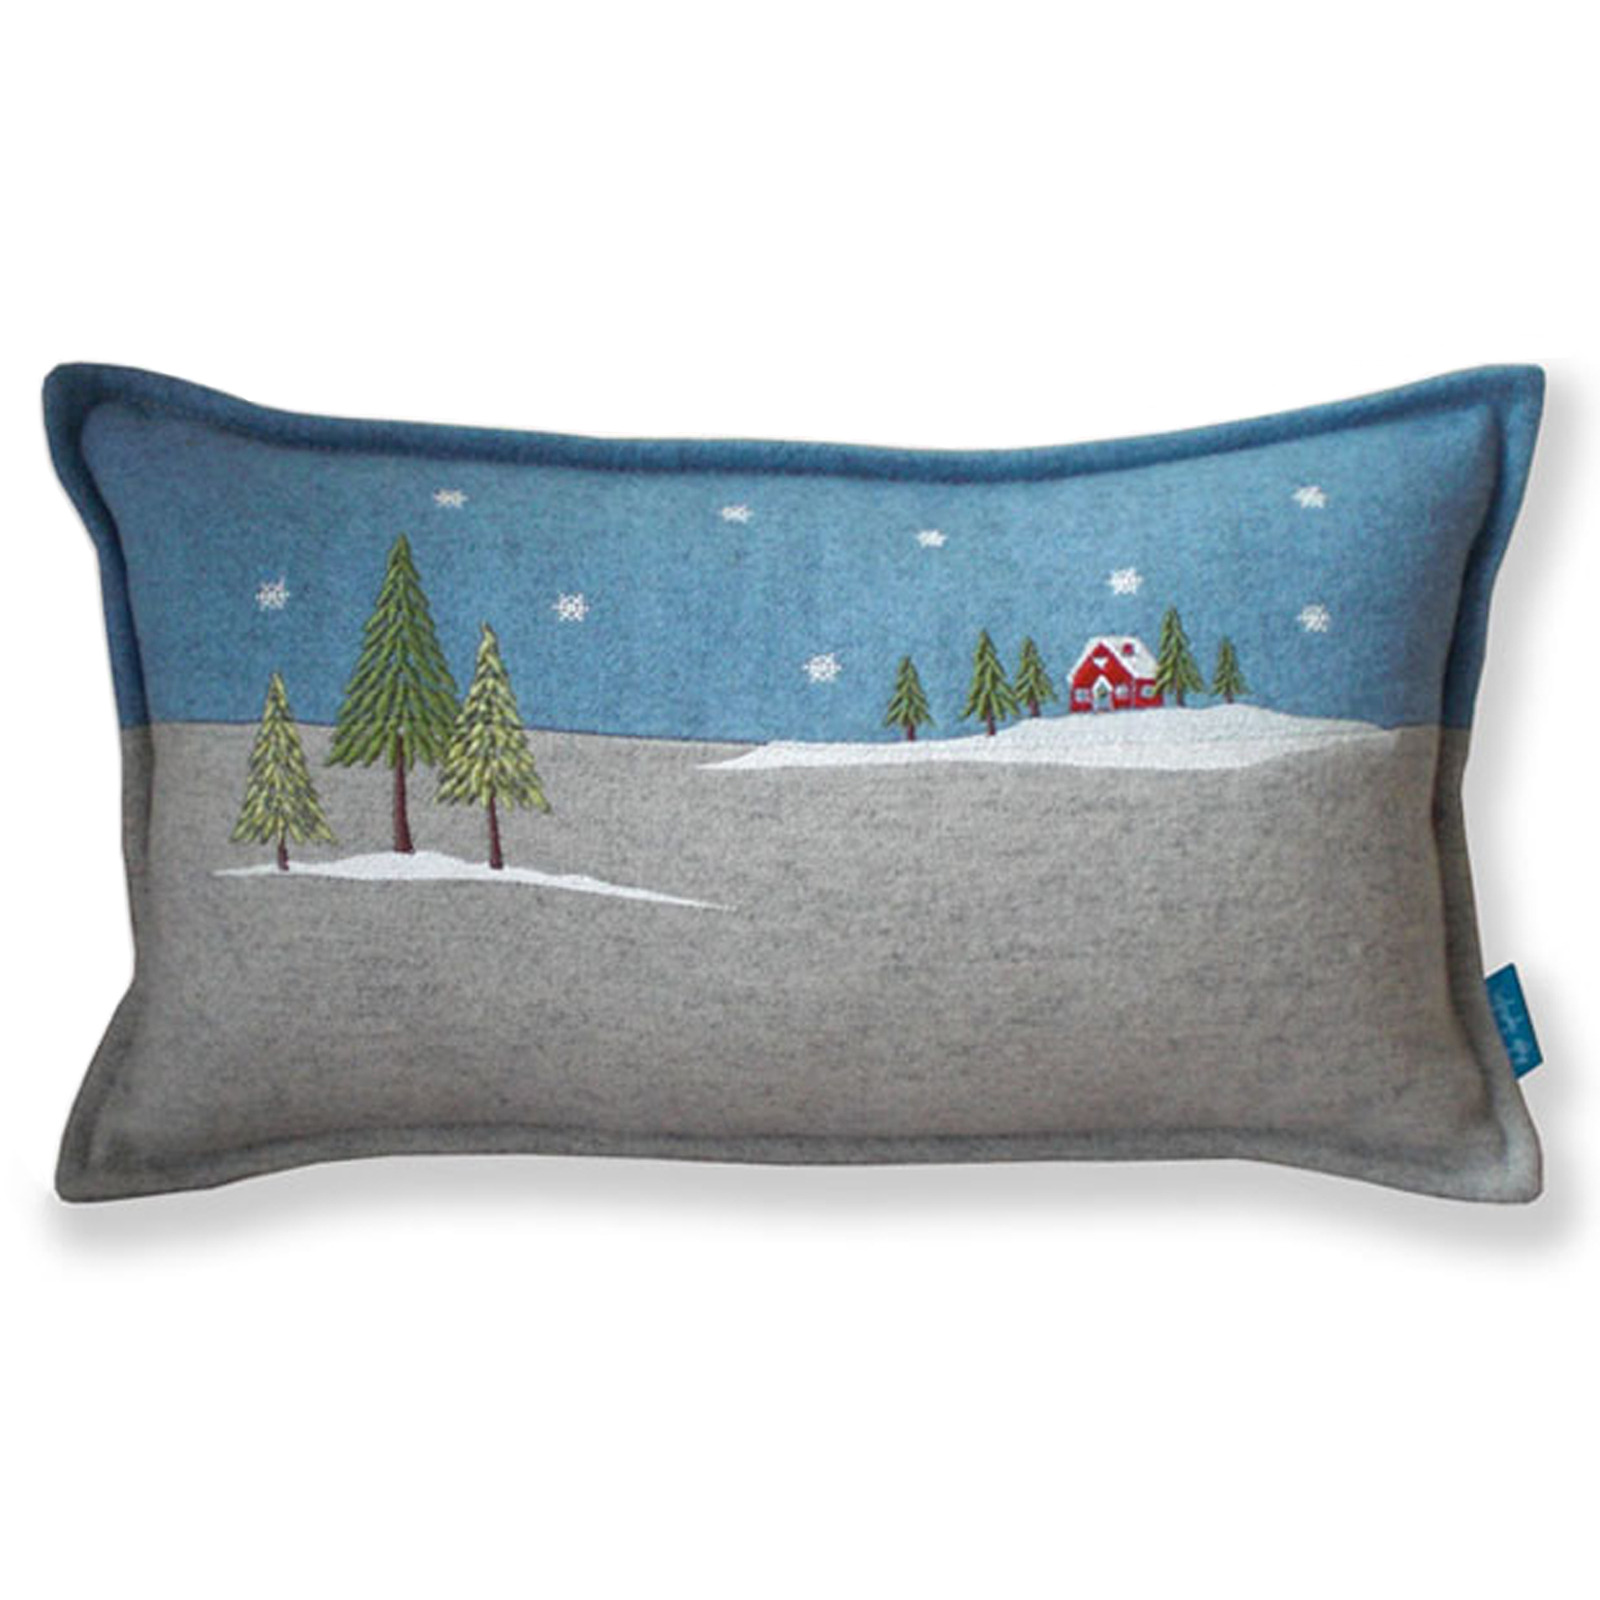 Christmas Cushion - Winter Lodge by Kate Sproston